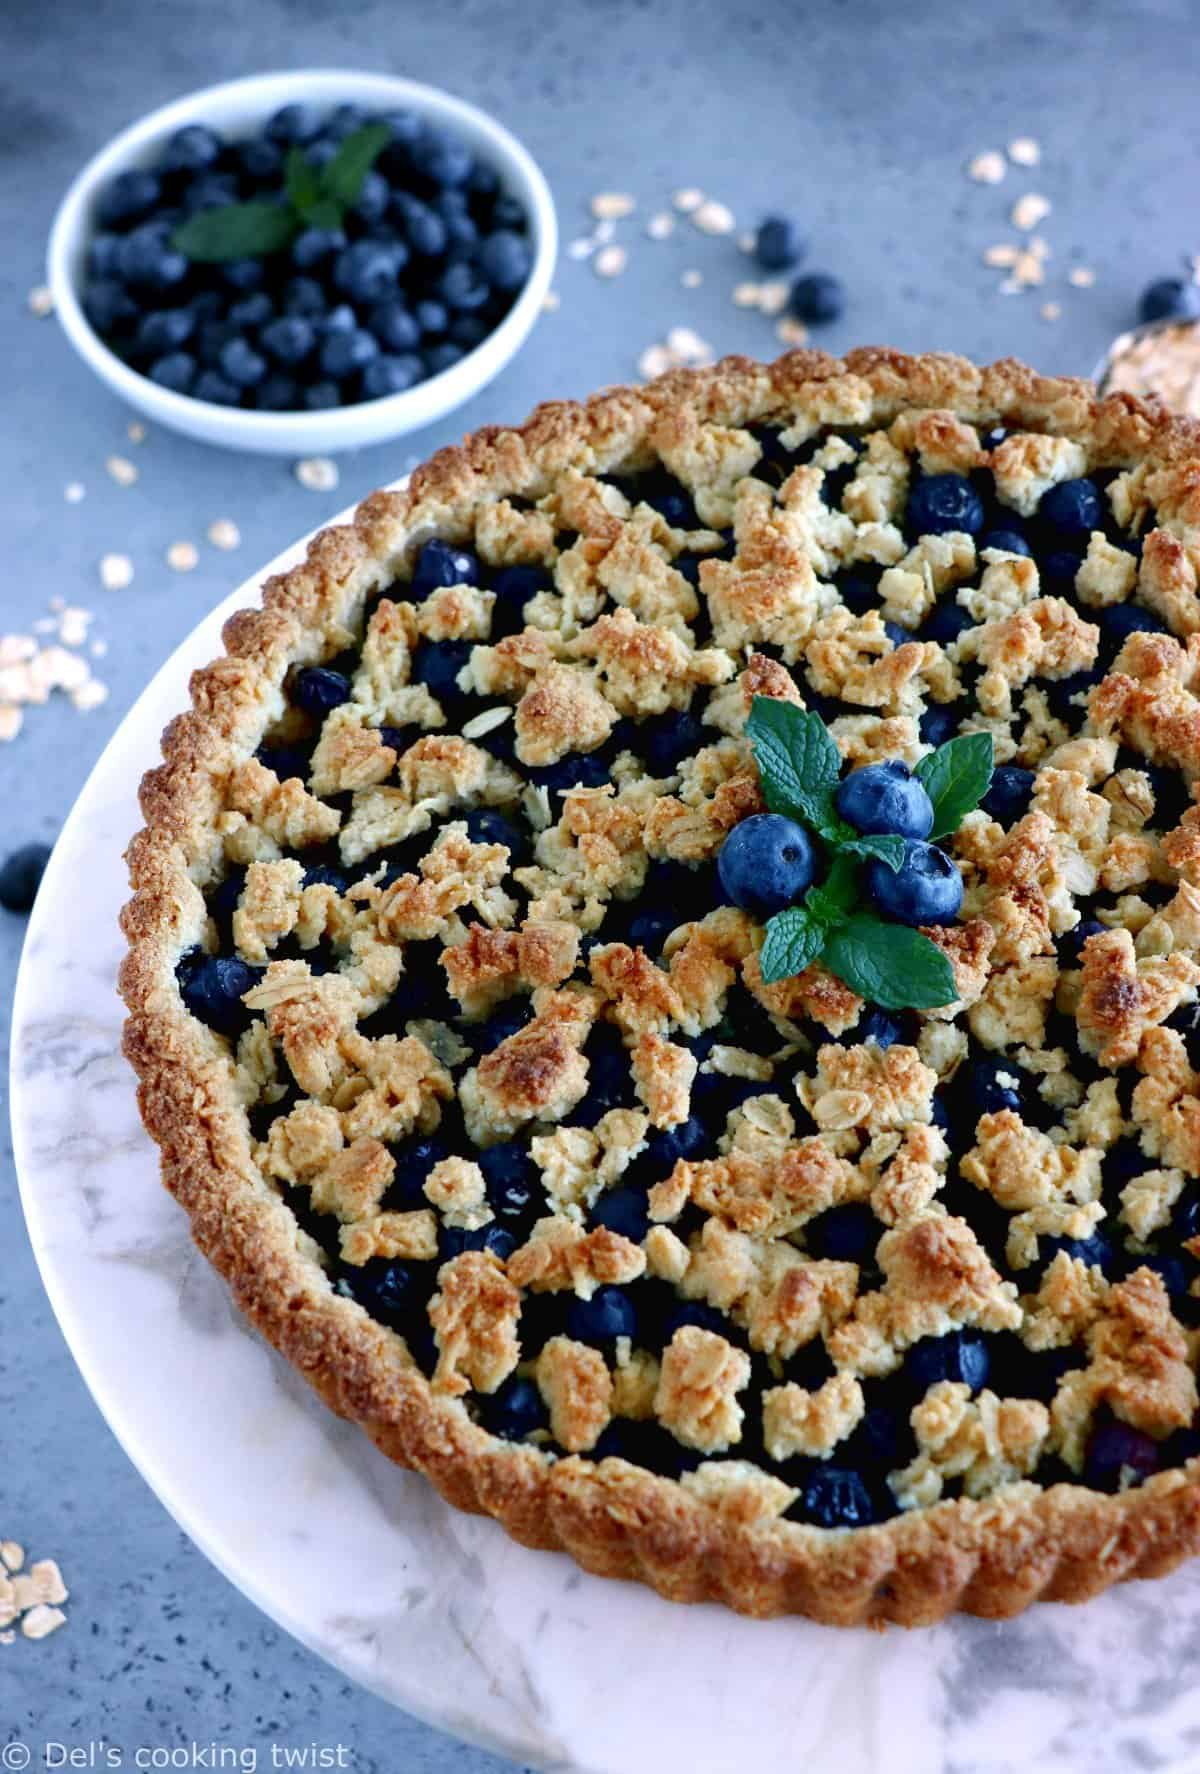 Blueberry Pie with Oat Crust